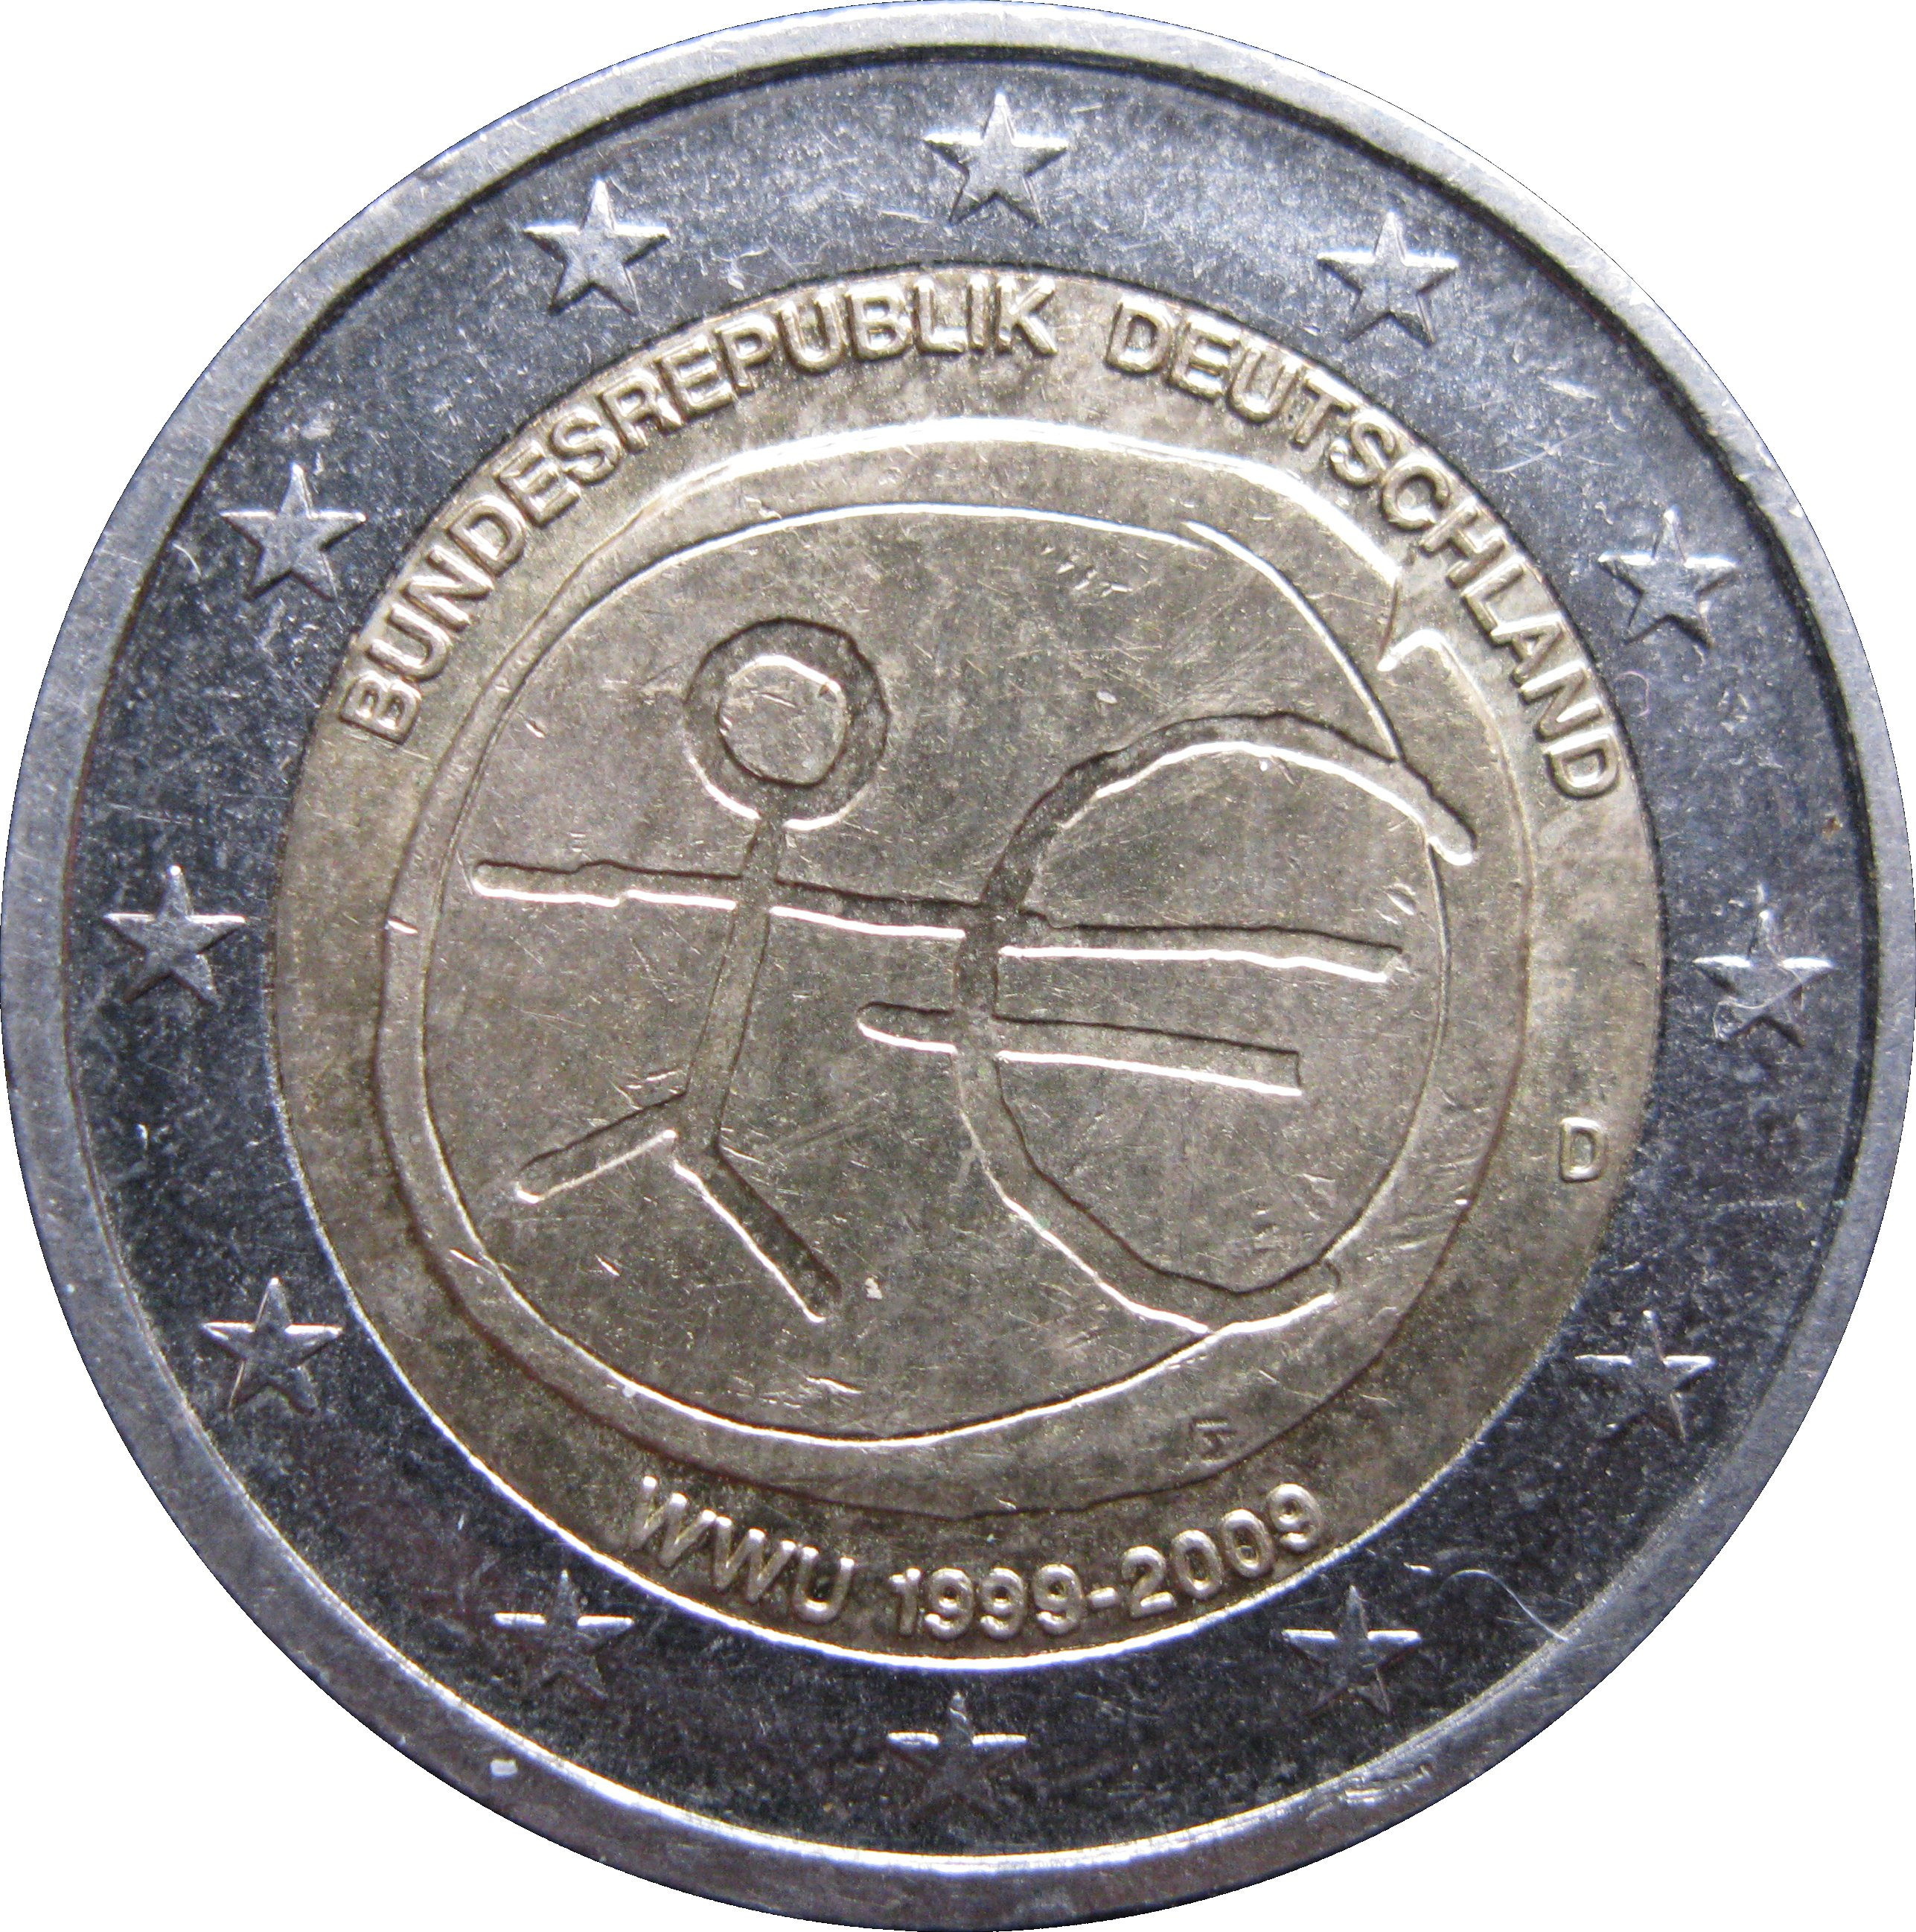 2009: 2 Euro (10 Years Of EMU)